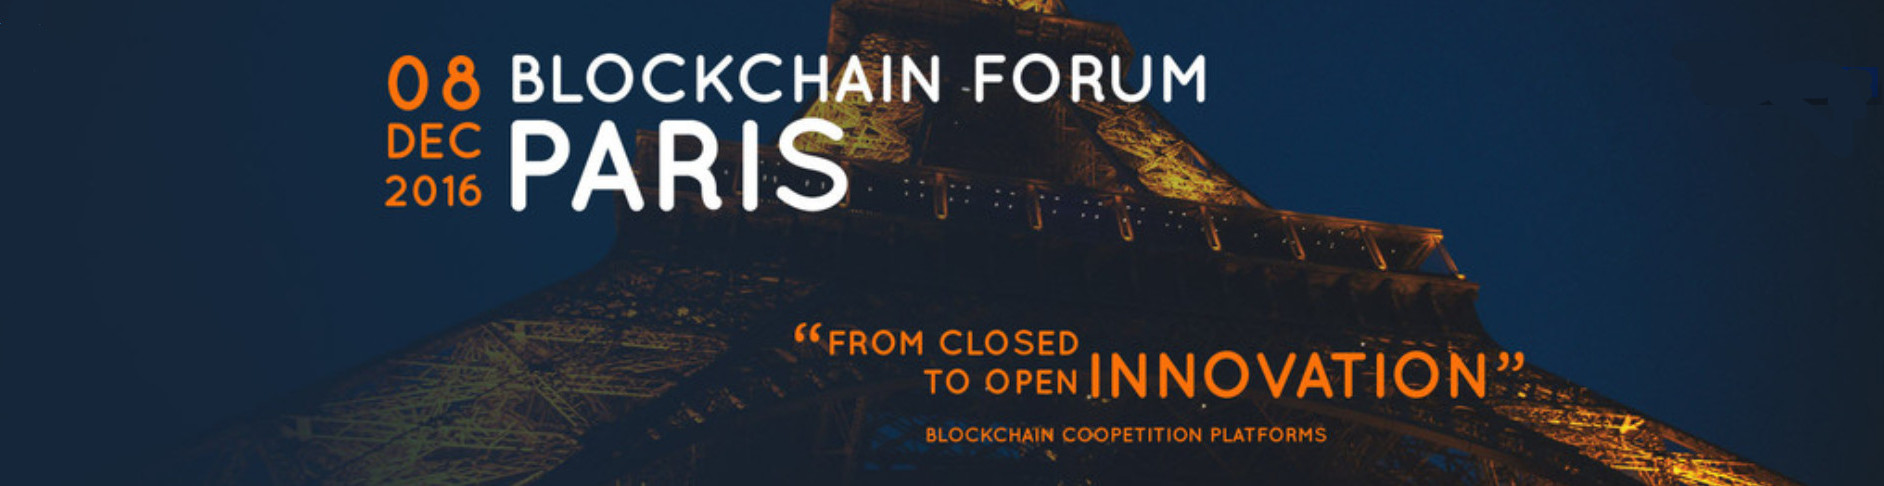 blockchainforum2